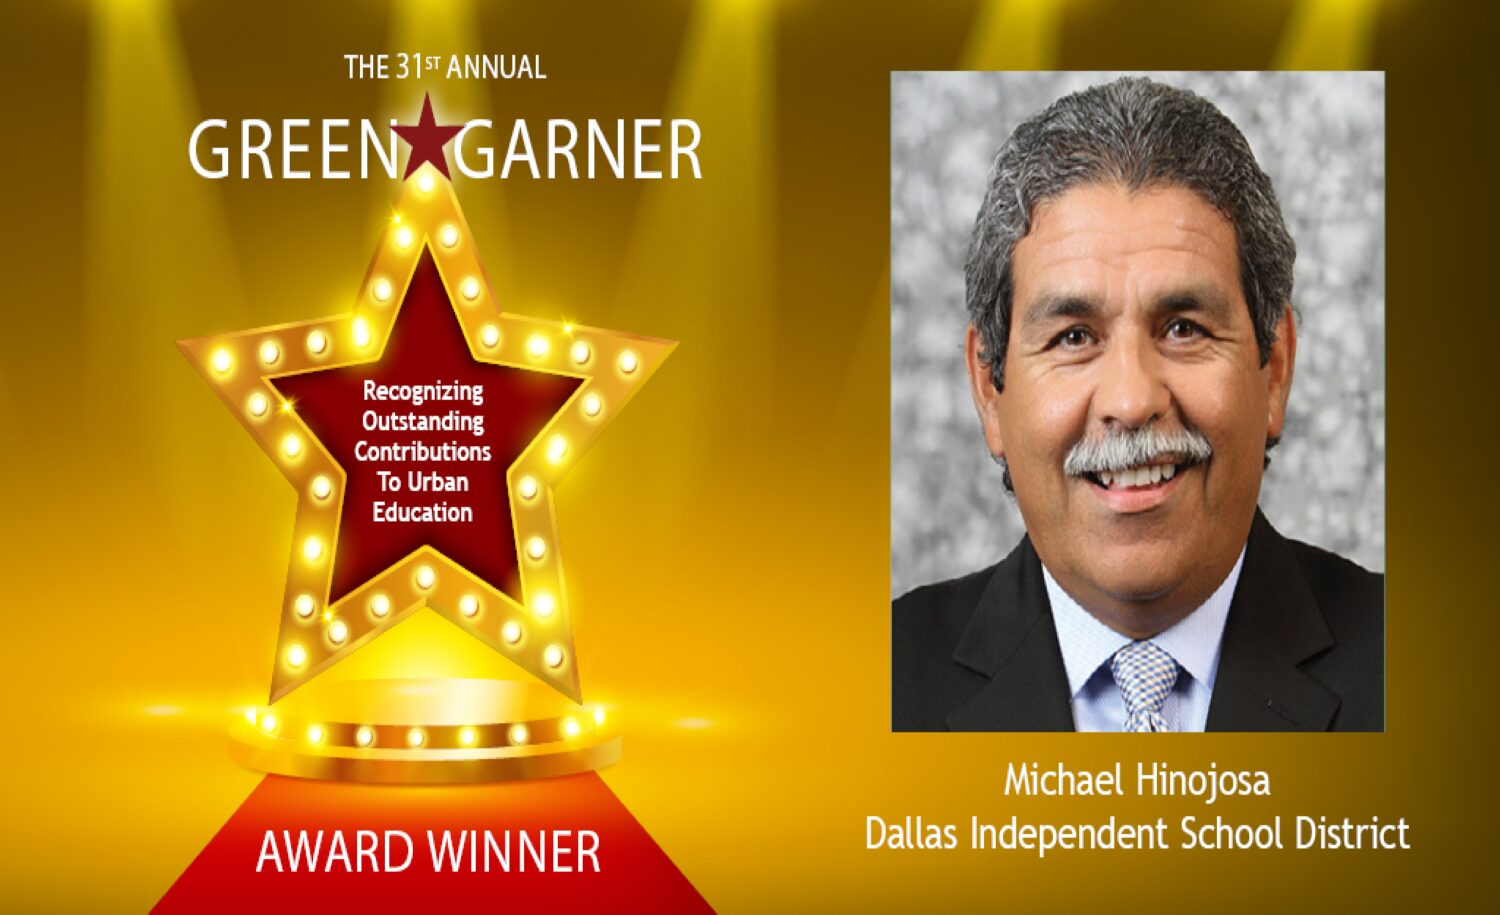 Curriculum Associates Sponsors the Council of the Great City Schools' 2020 Green-Garner Award Recognizing Outstanding Leadership in Urban Education